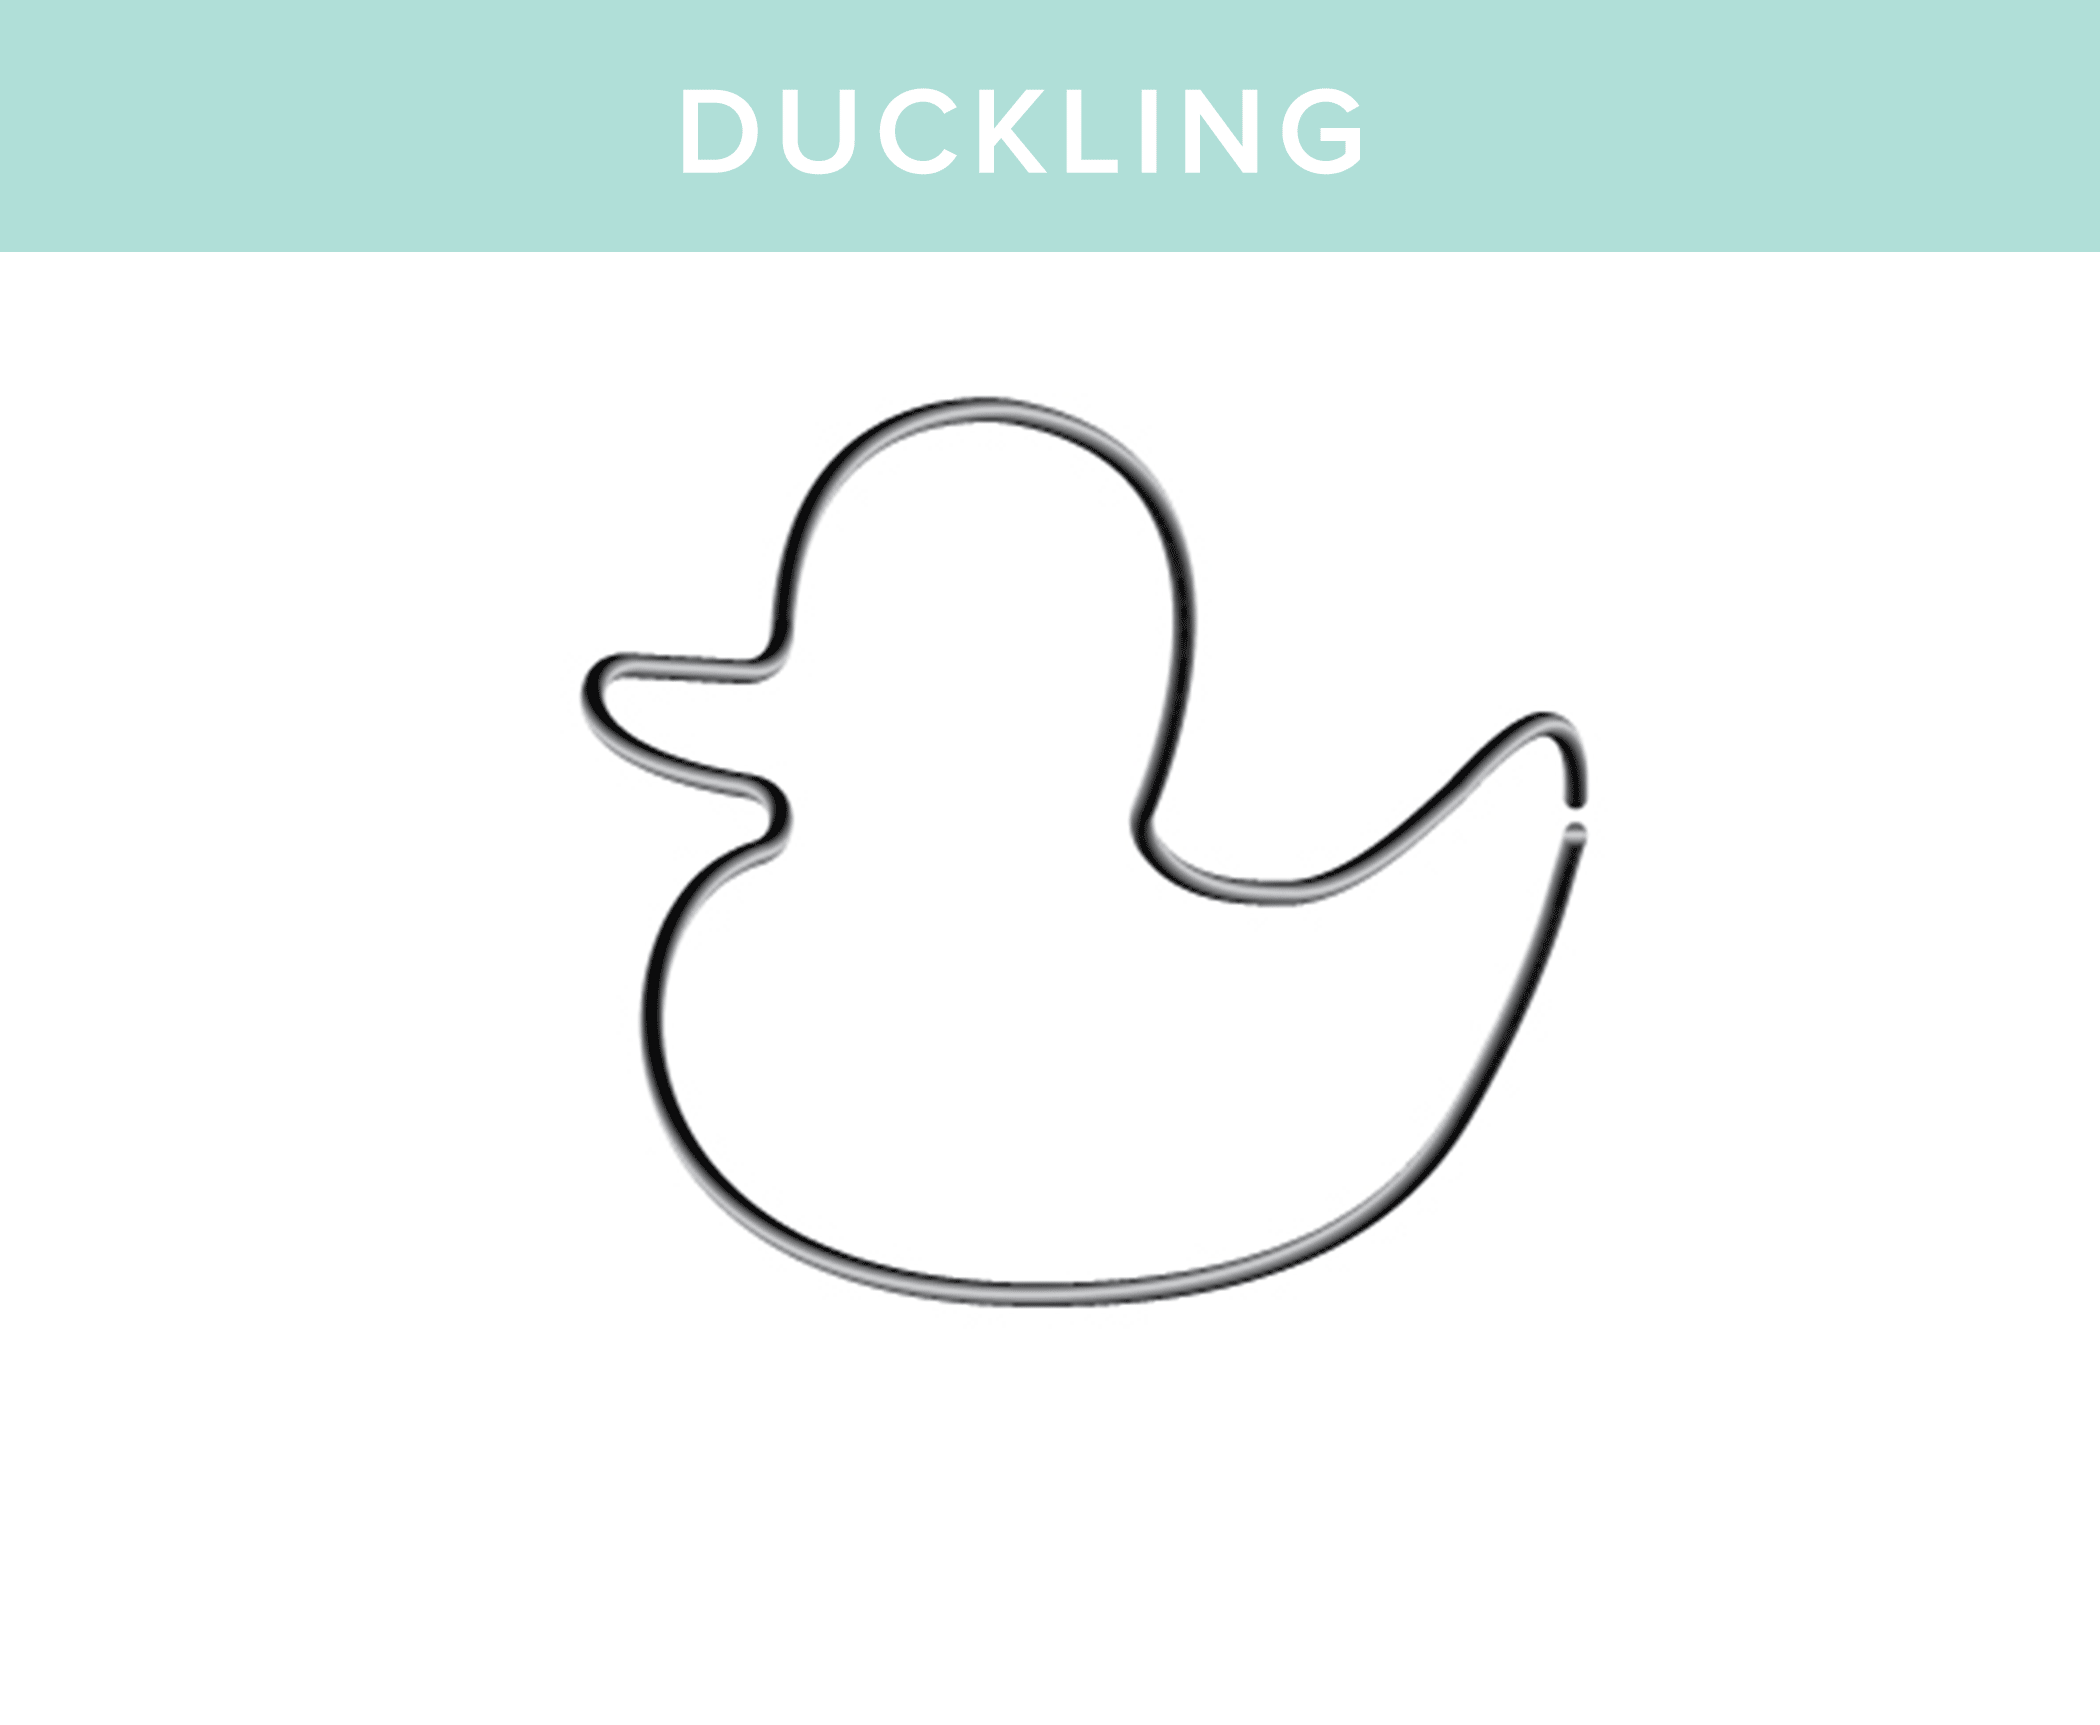 Happy-Jig-Website-TemplateDUCKLING